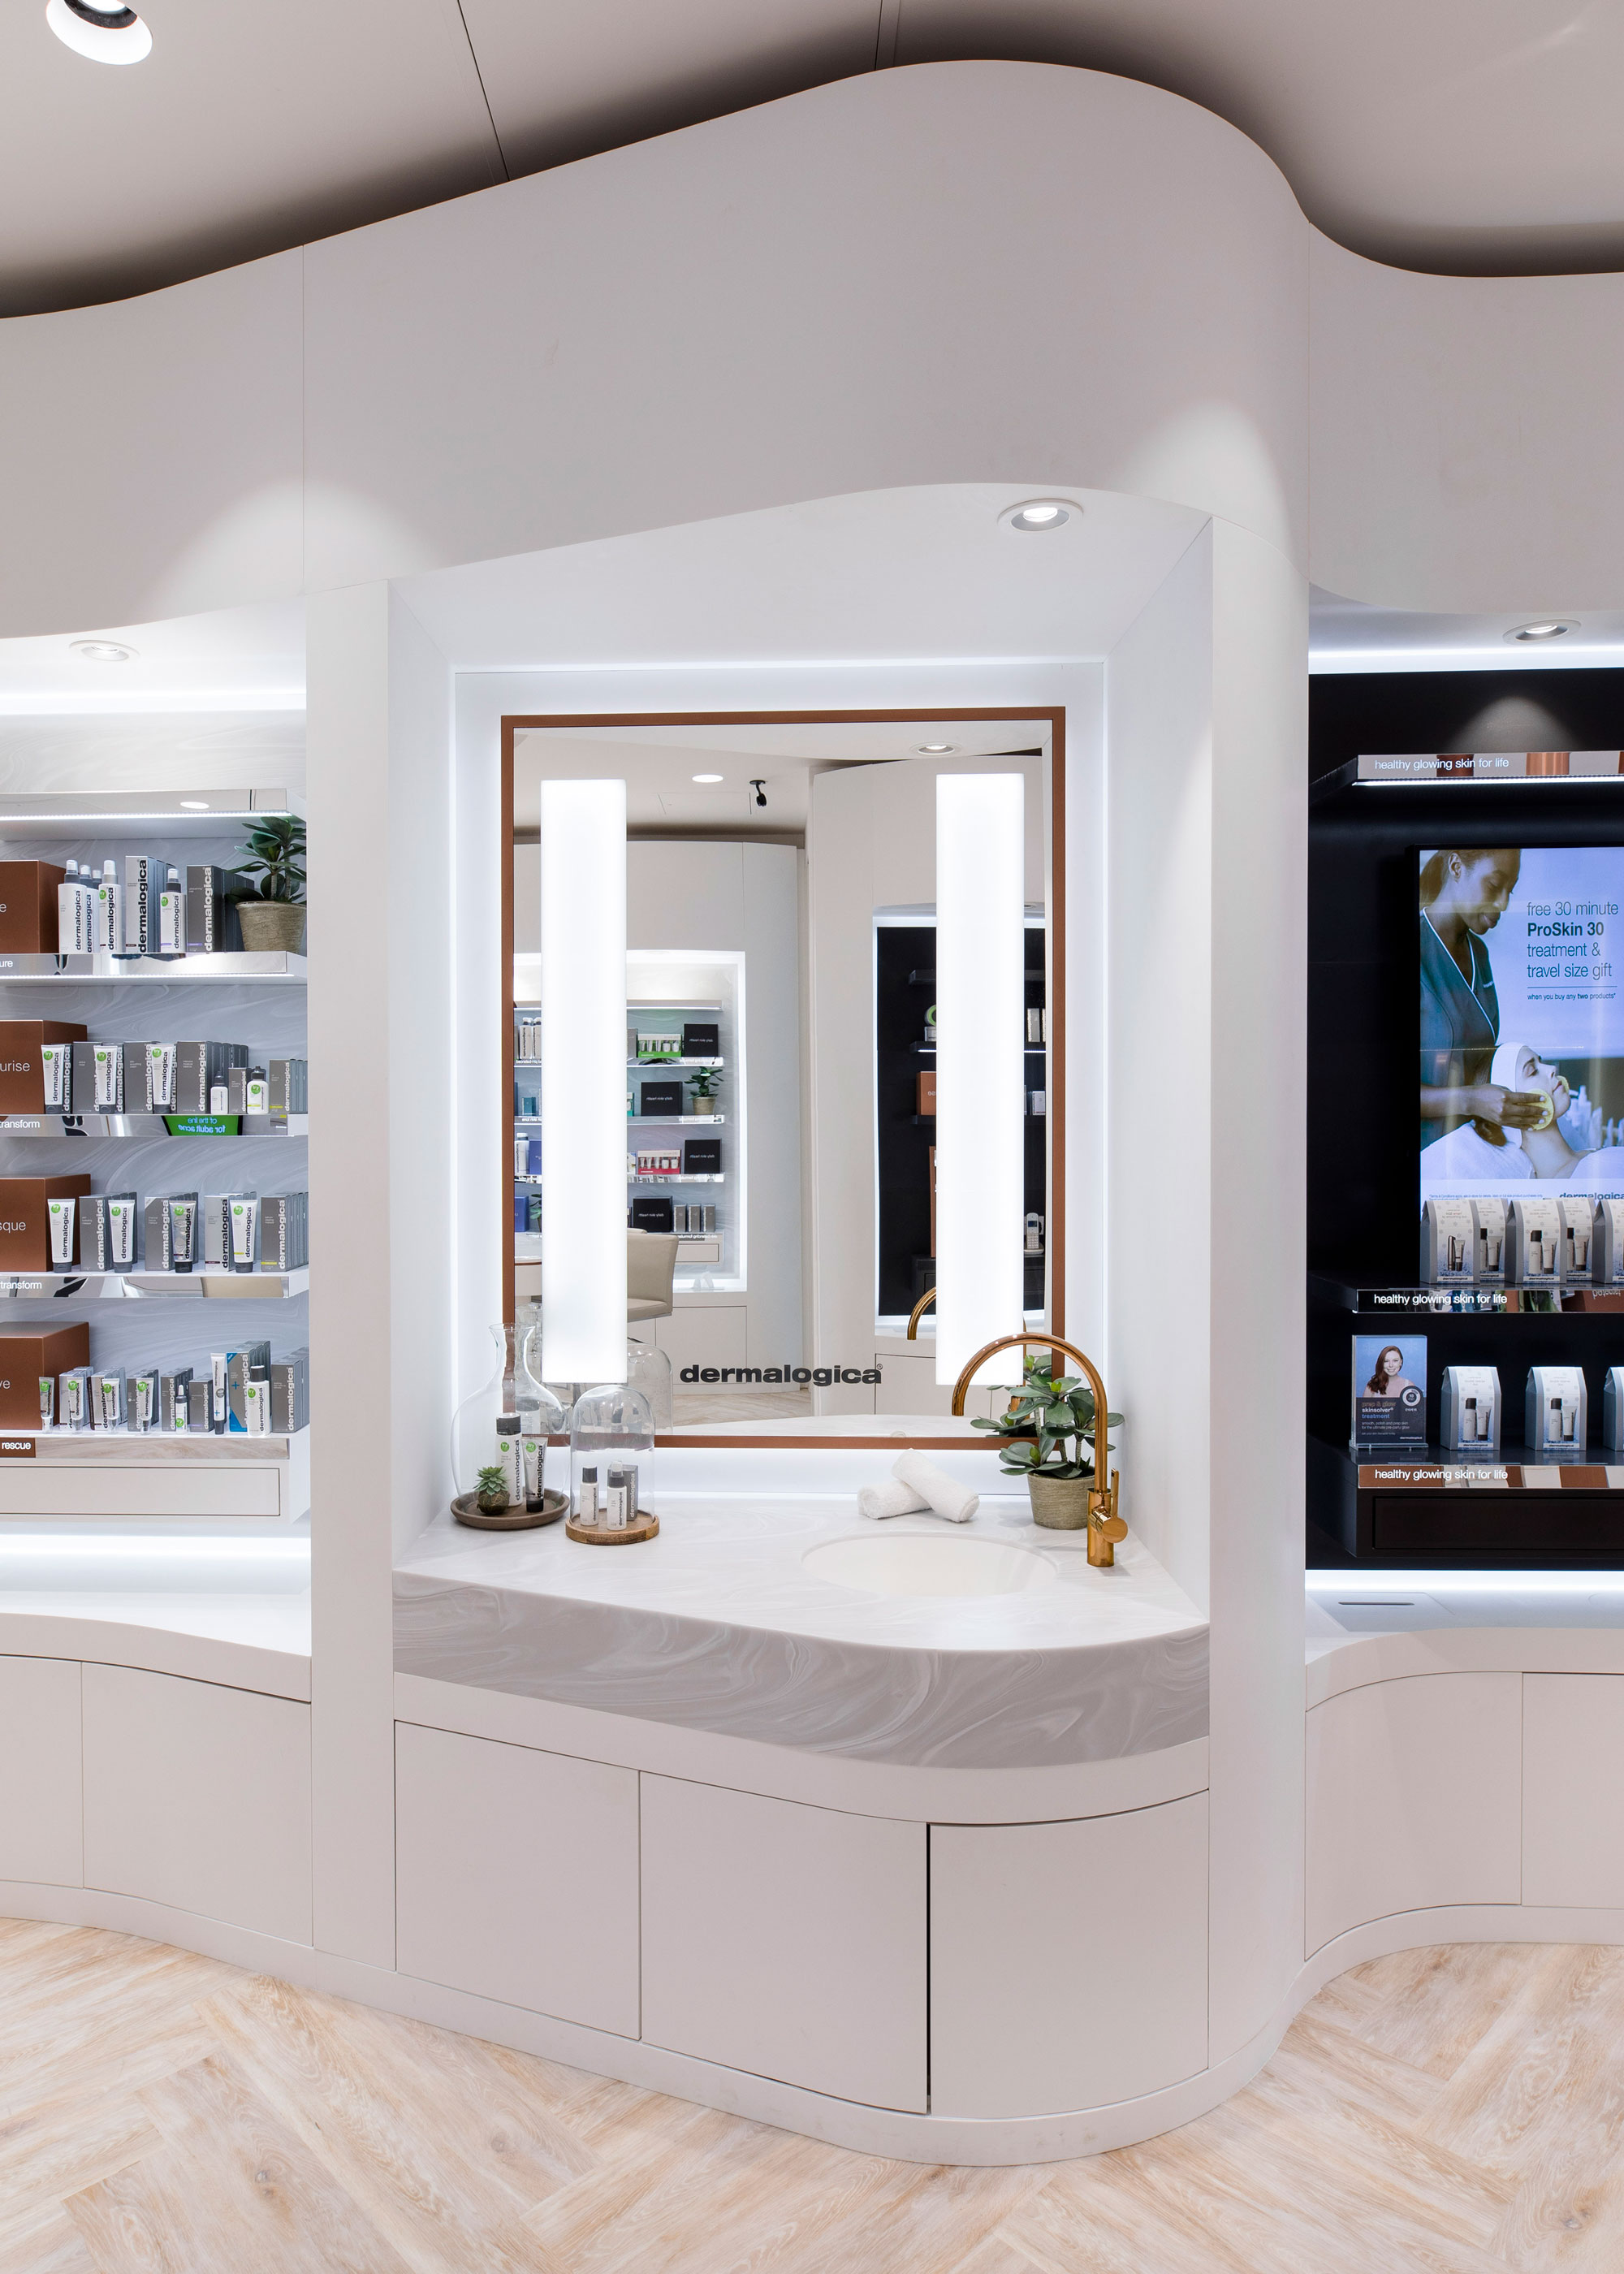 Dermalogica Flagship Store Uses Corian 174 Design To Create